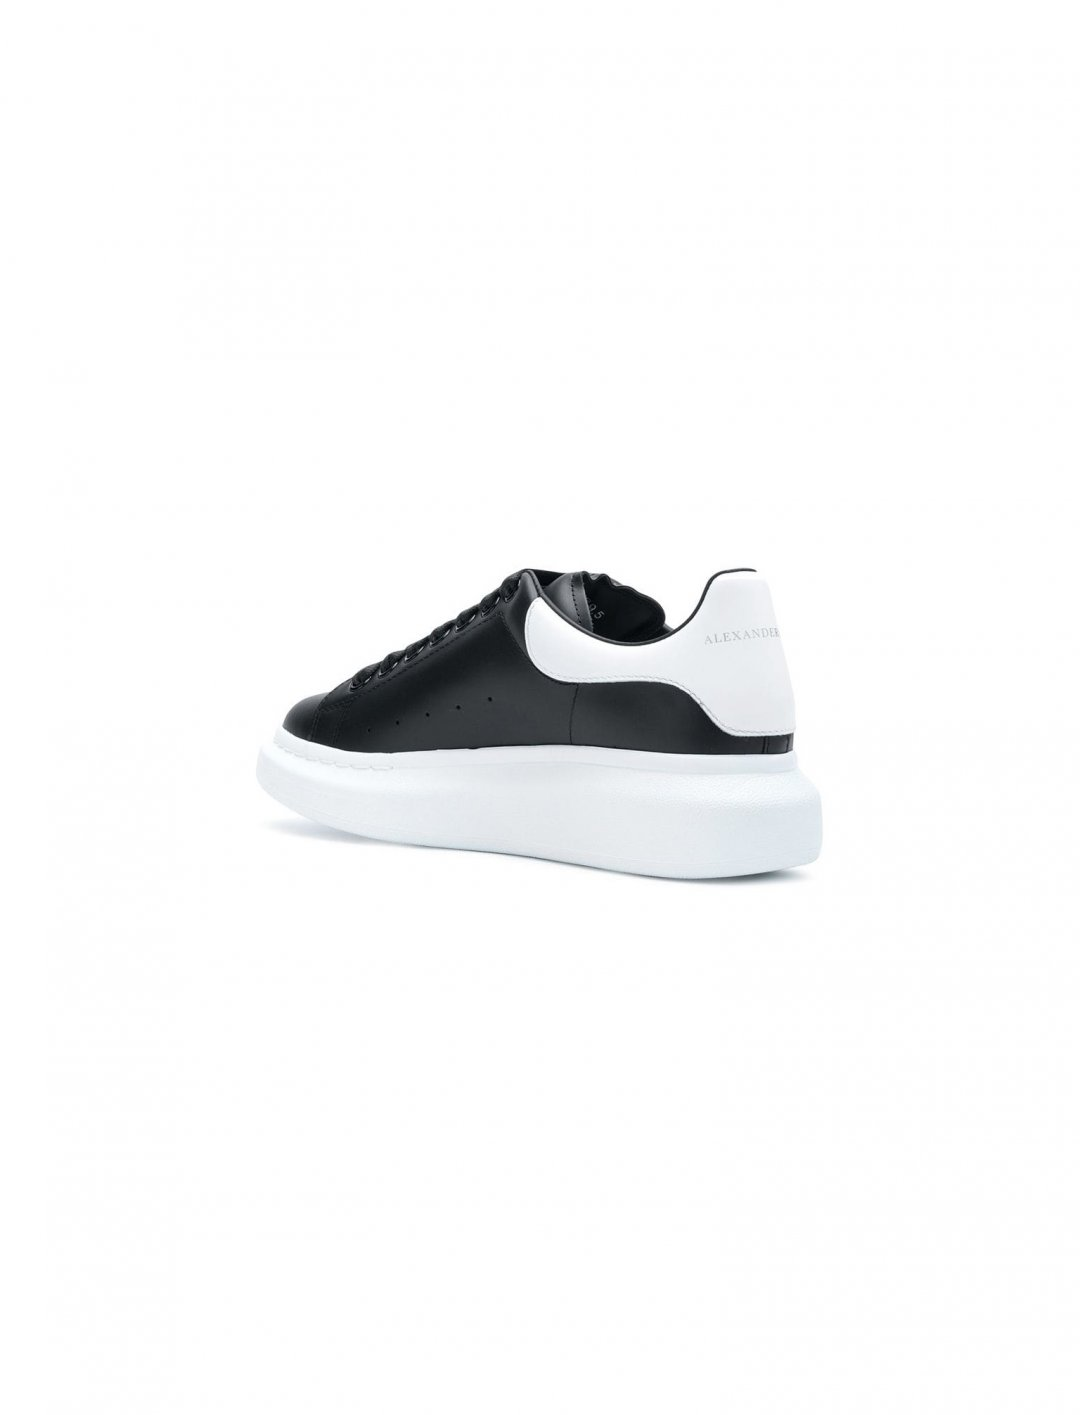 "Lotto Boyzz' Sneakers {""id"":12,""product_section_id"":1,""name"":""Shoes"",""order"":12} Alexander McQueen"